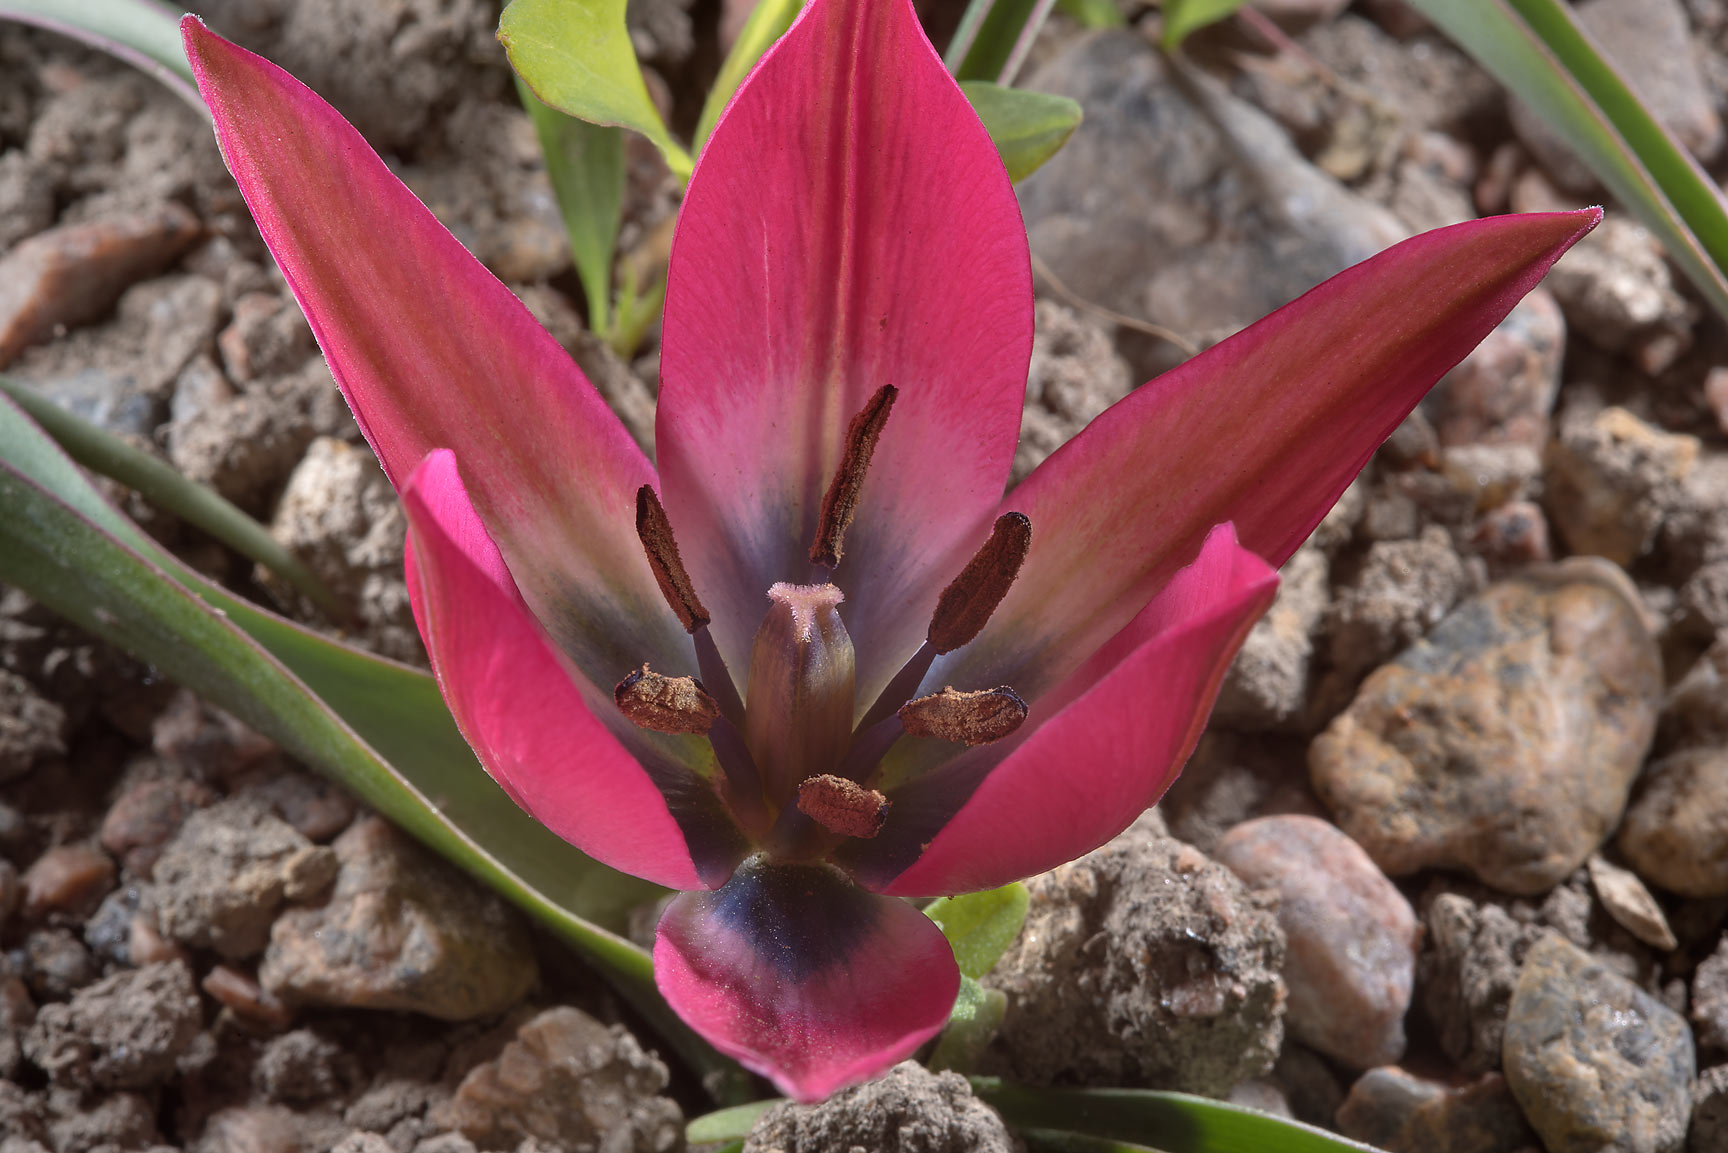 Pink flower of Tulipa hageri 'Little Beauty' in...Institute. St.Petersburg, Russia